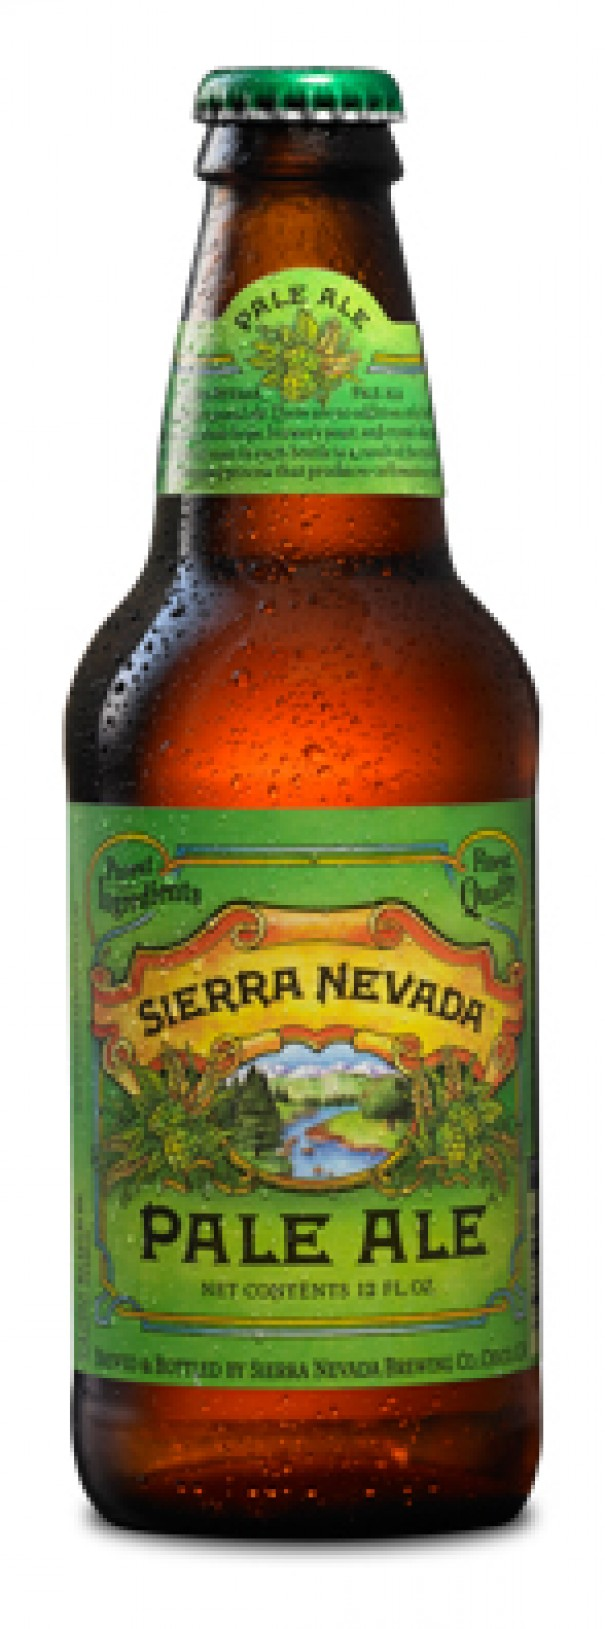 The name Mills River will be added to the line across the bottom of the label, which now says Brewed and bottled by Sierra Nevada Brewing Co., Chico, Calif. [Photo by Sierra Nevada Brewing Co.]